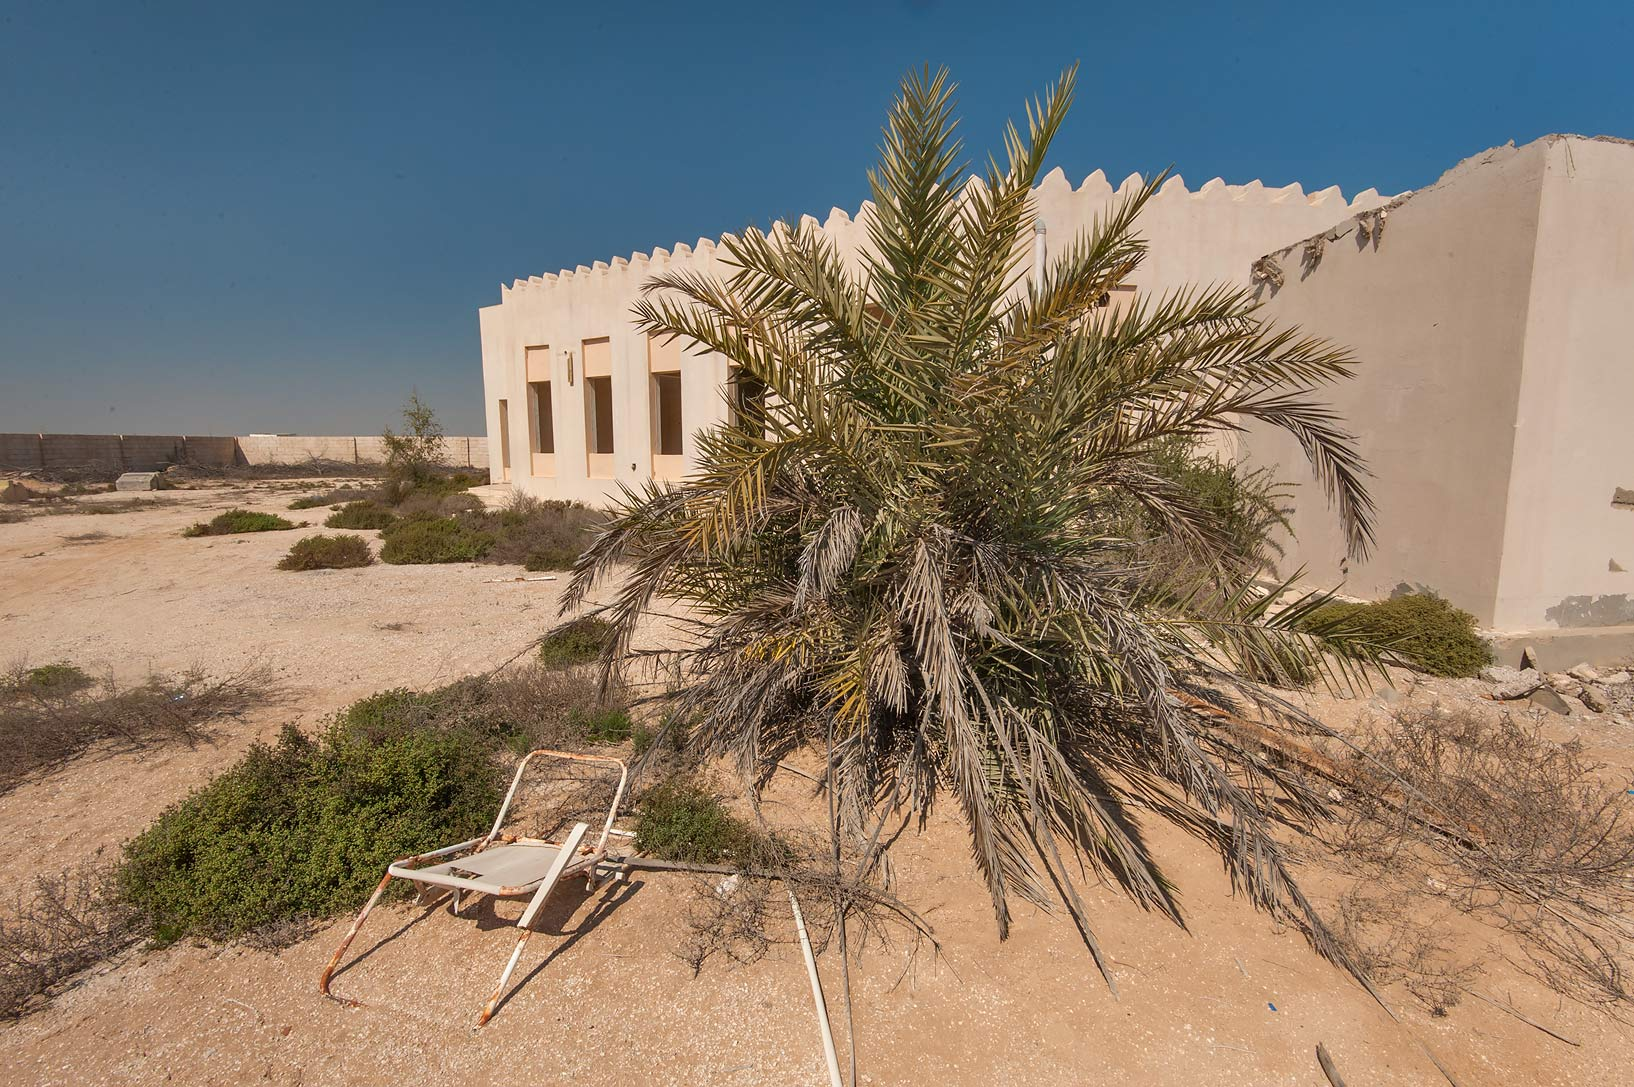 Date palms (Phoenix dactylifera, local name...Ras Laffan farms. North-eastern Qatar